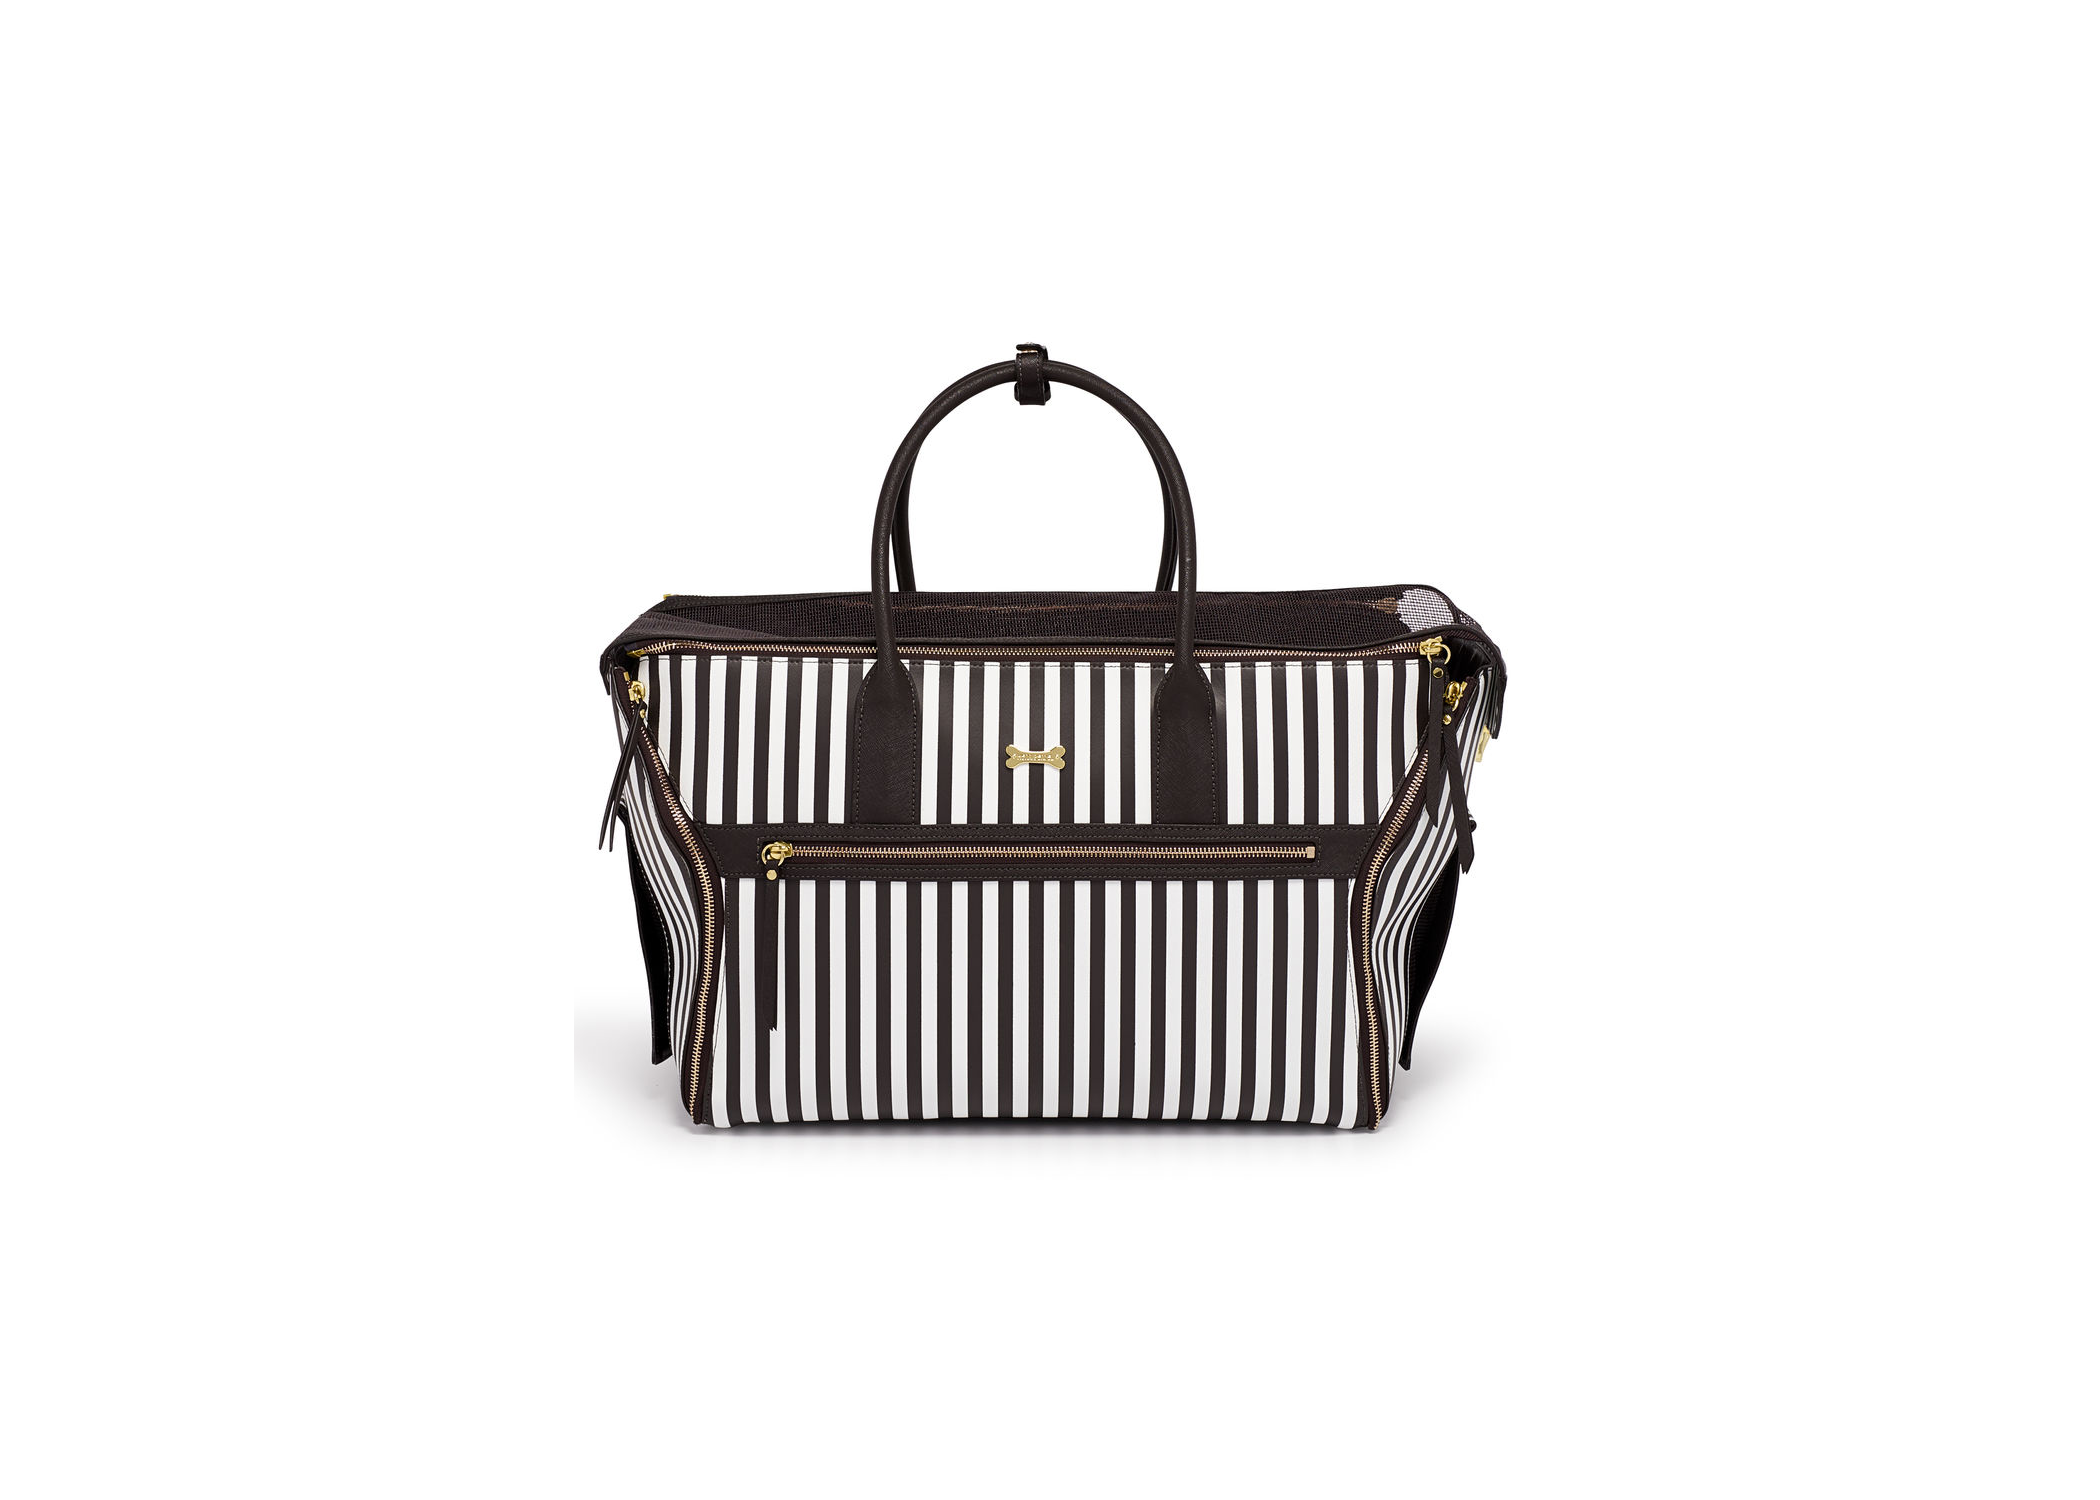 Henri Bendel Dog Carrier